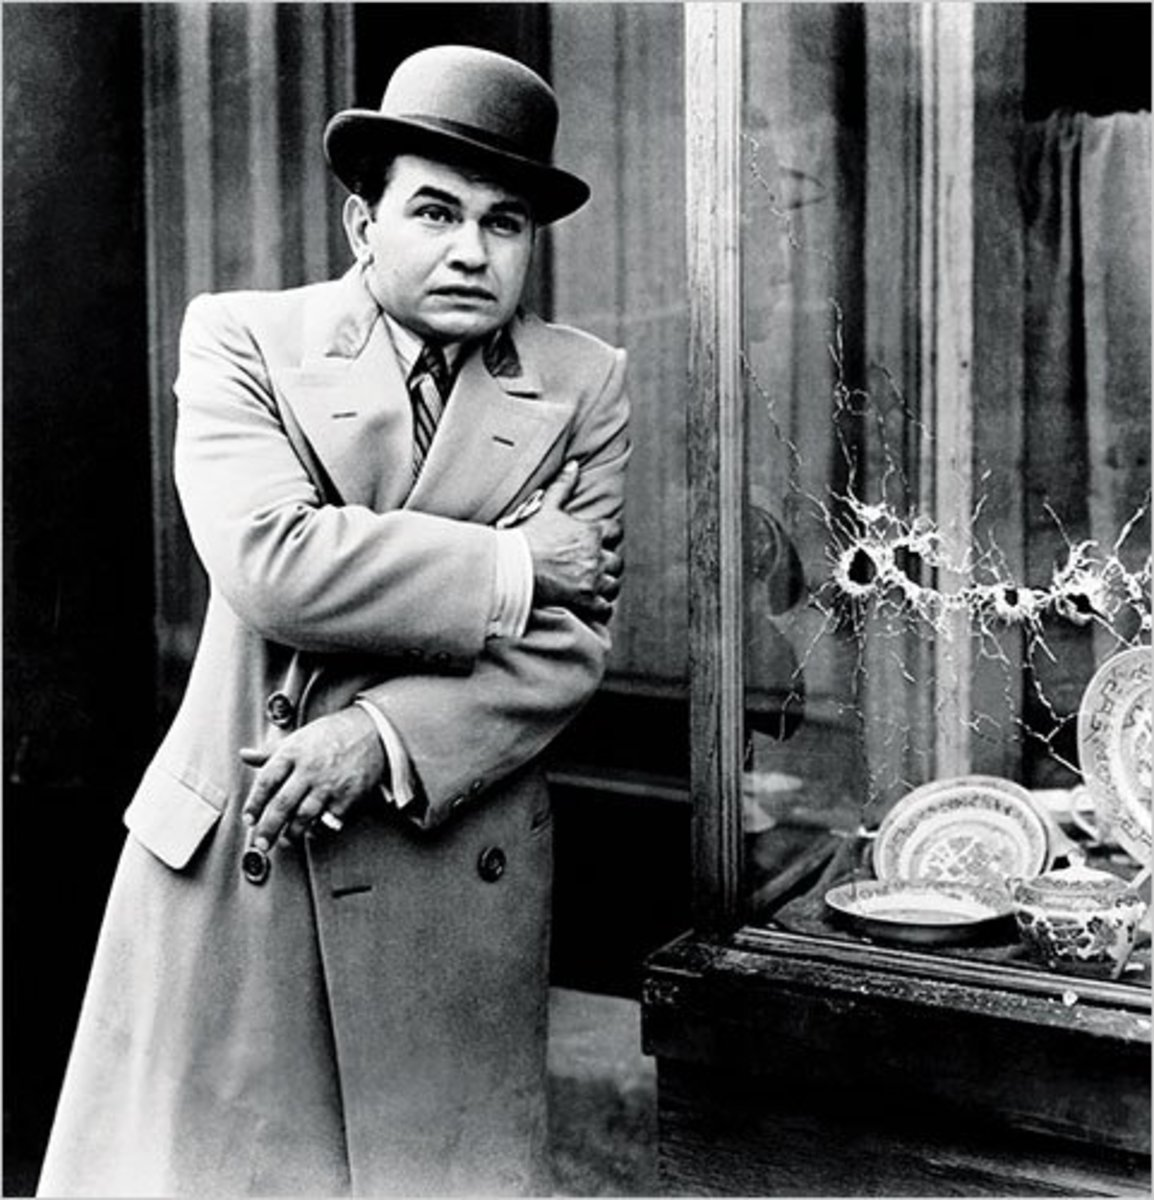 Little Caesar - Gangster Movies of the 1930's and 1940's